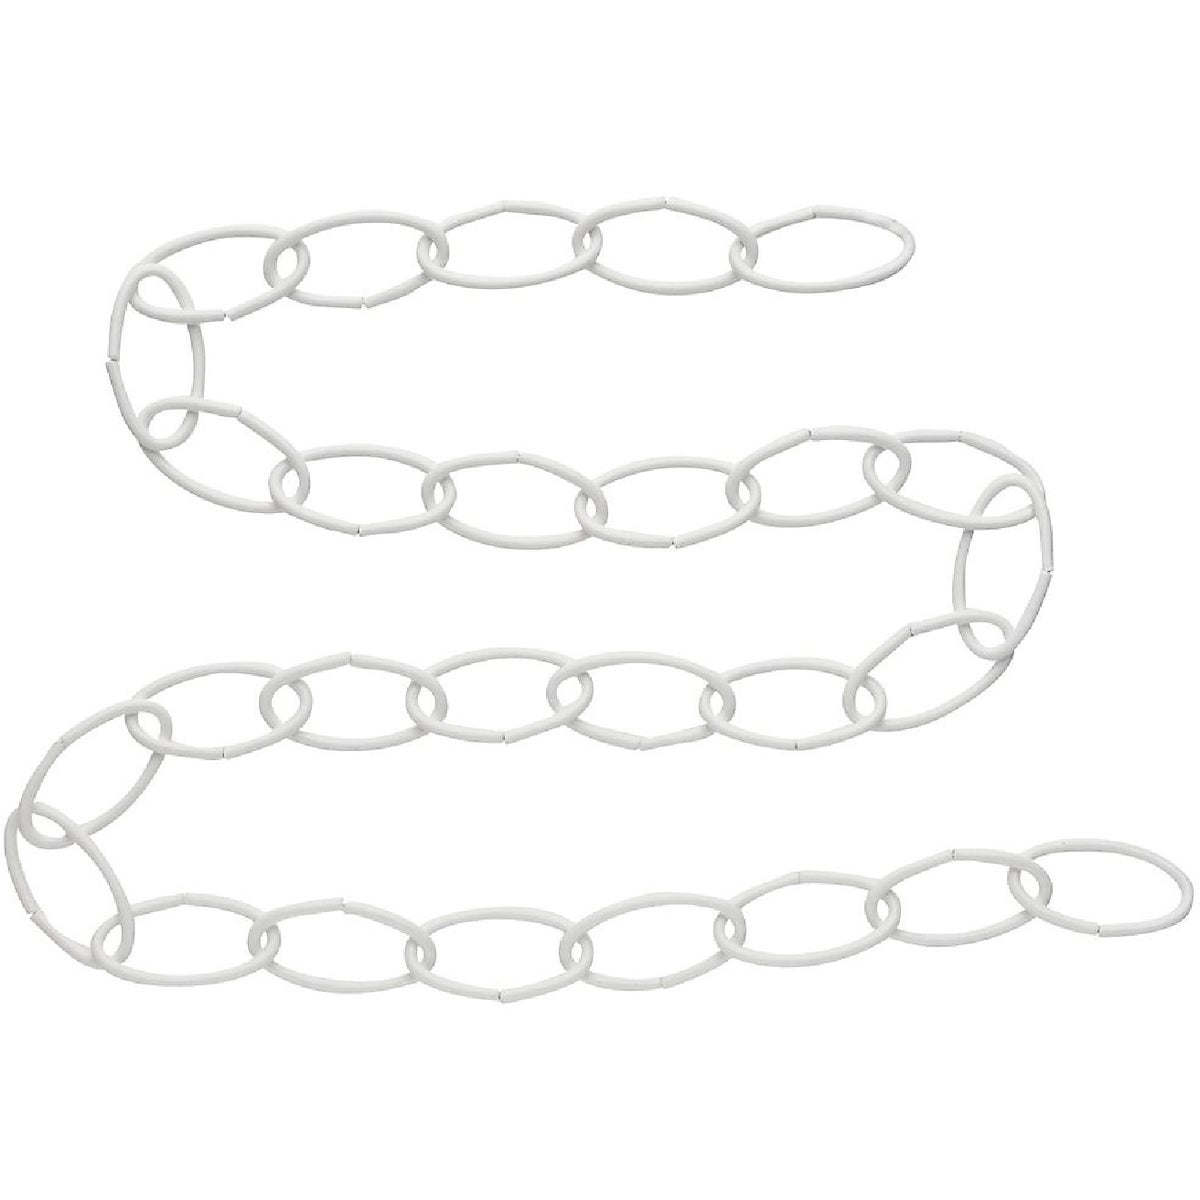 "36"" WHT EXTENSION CHAIN - N275016 by National Mfg Co"